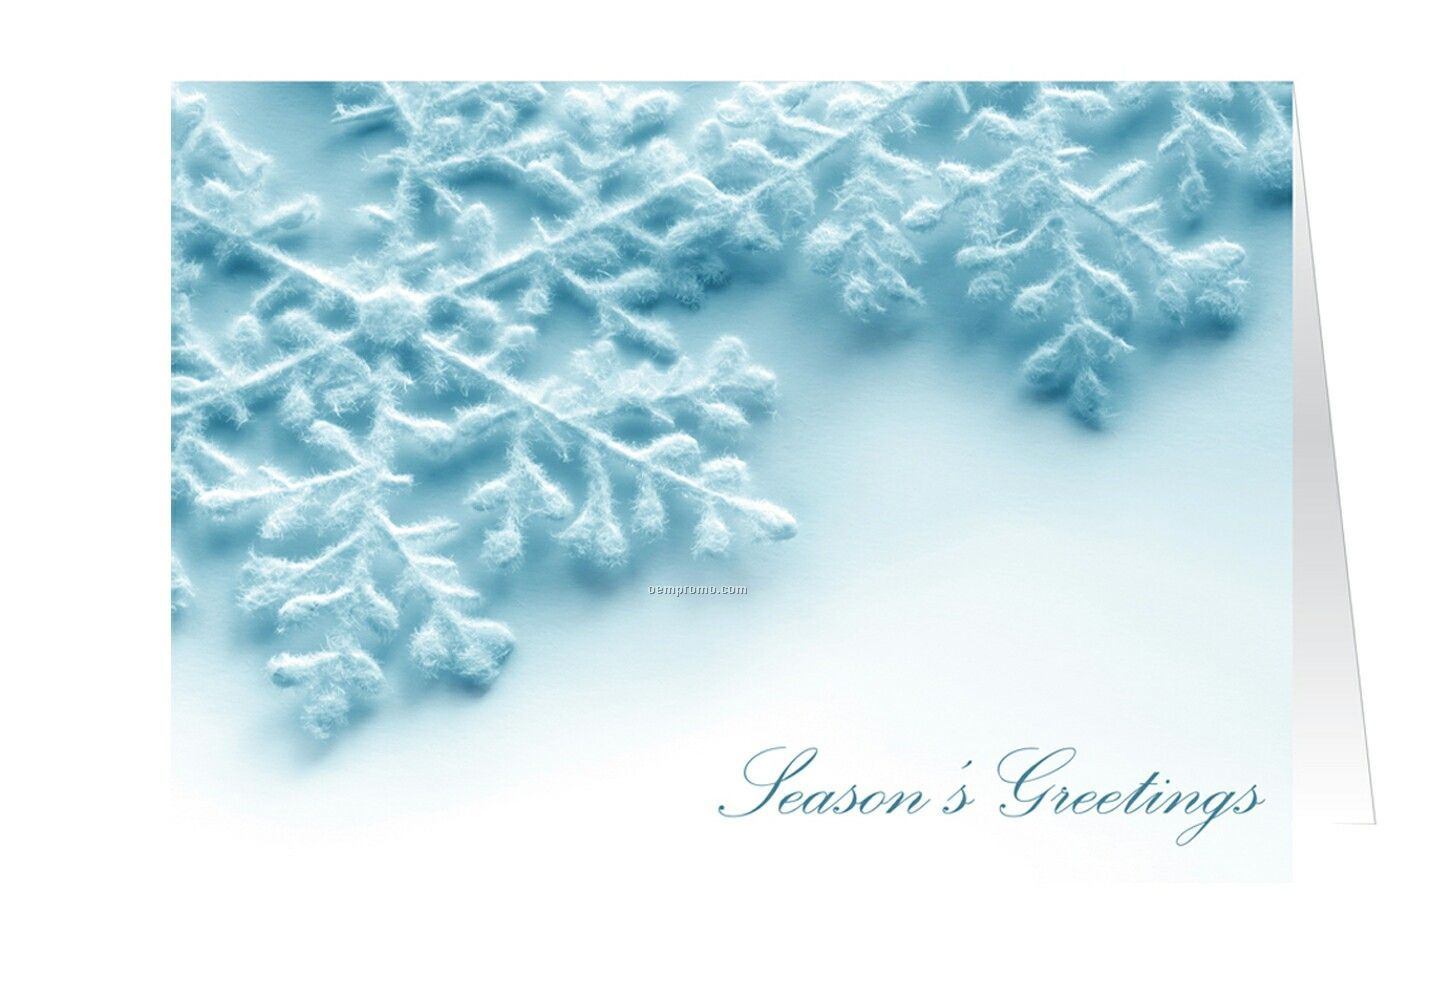 Snowflakes seasons greetings holiday cardchina wholesale snowflakes seasons greetings holiday card m4hsunfo